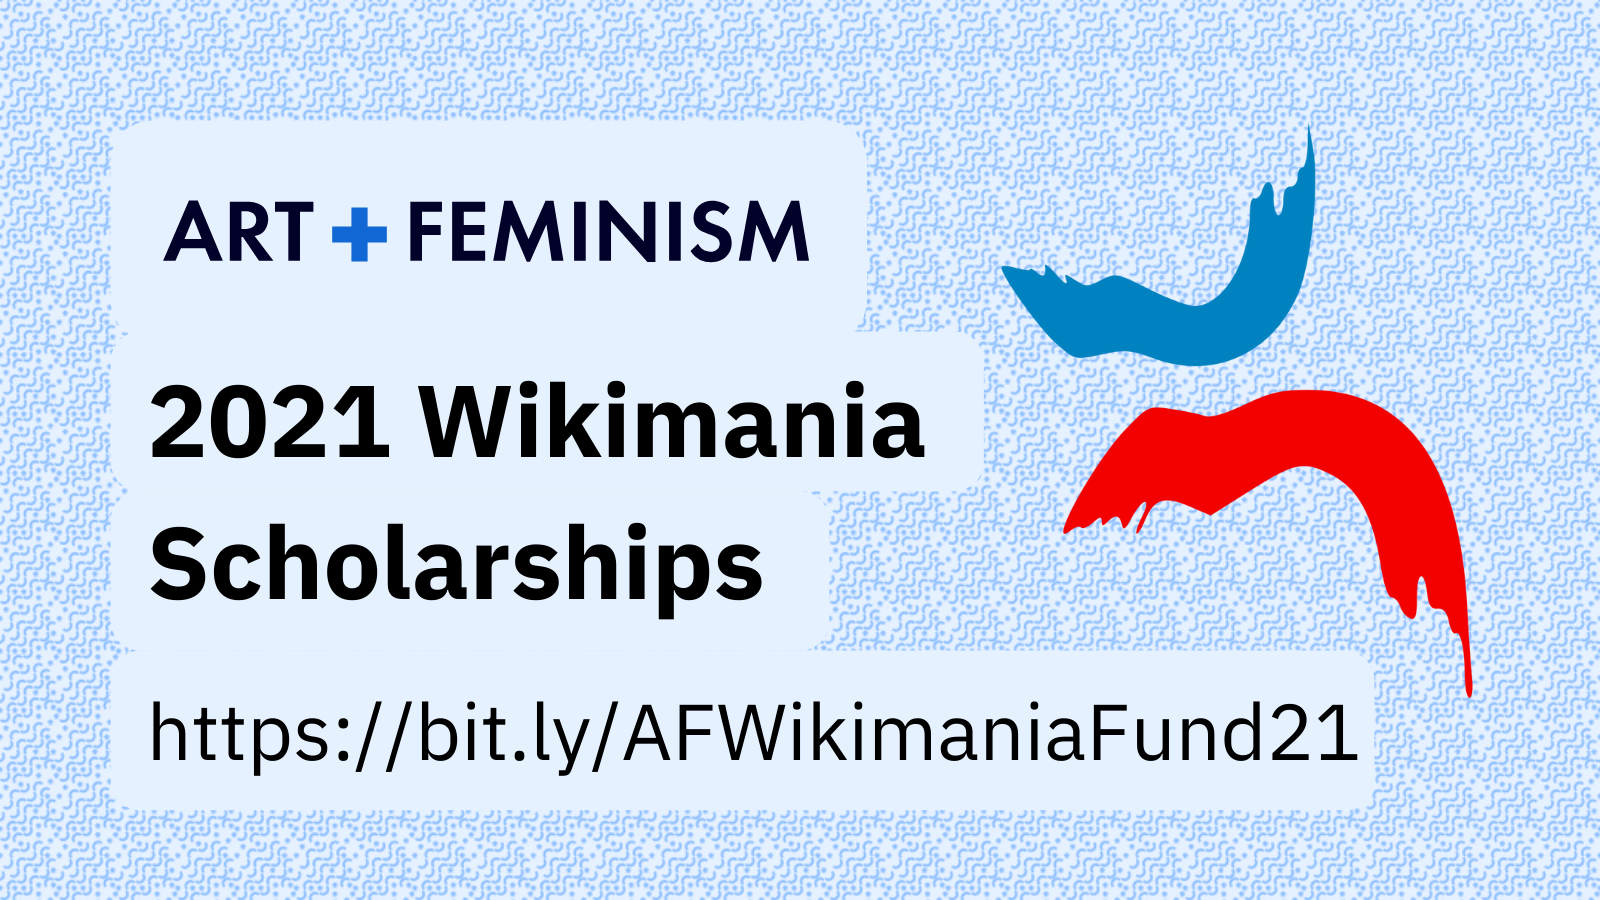 """Image with blue inside the envelope pattern with the Wikimania logo and the text: """"Art+Feminism Wikimania Scholarship"""" and the url """"https://bit.ly/AFWikimaniaFund21"""""""